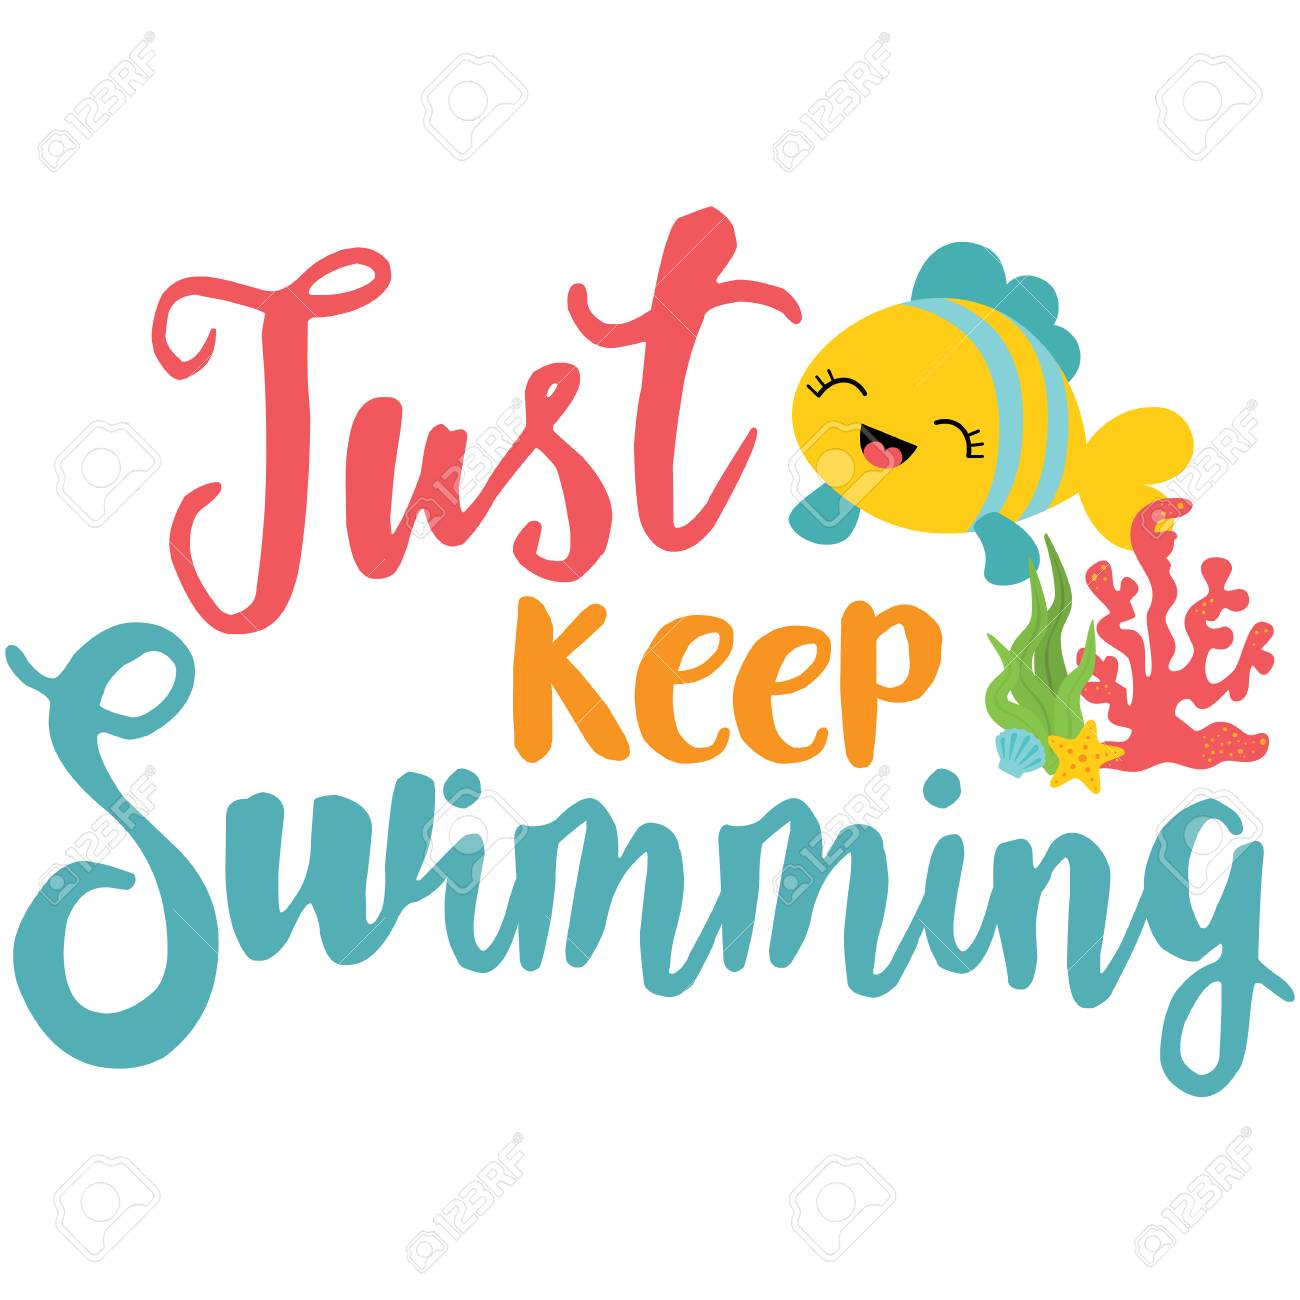 Just Keep Swimming Phrase Illustration. Perfect for scrapbooking,...